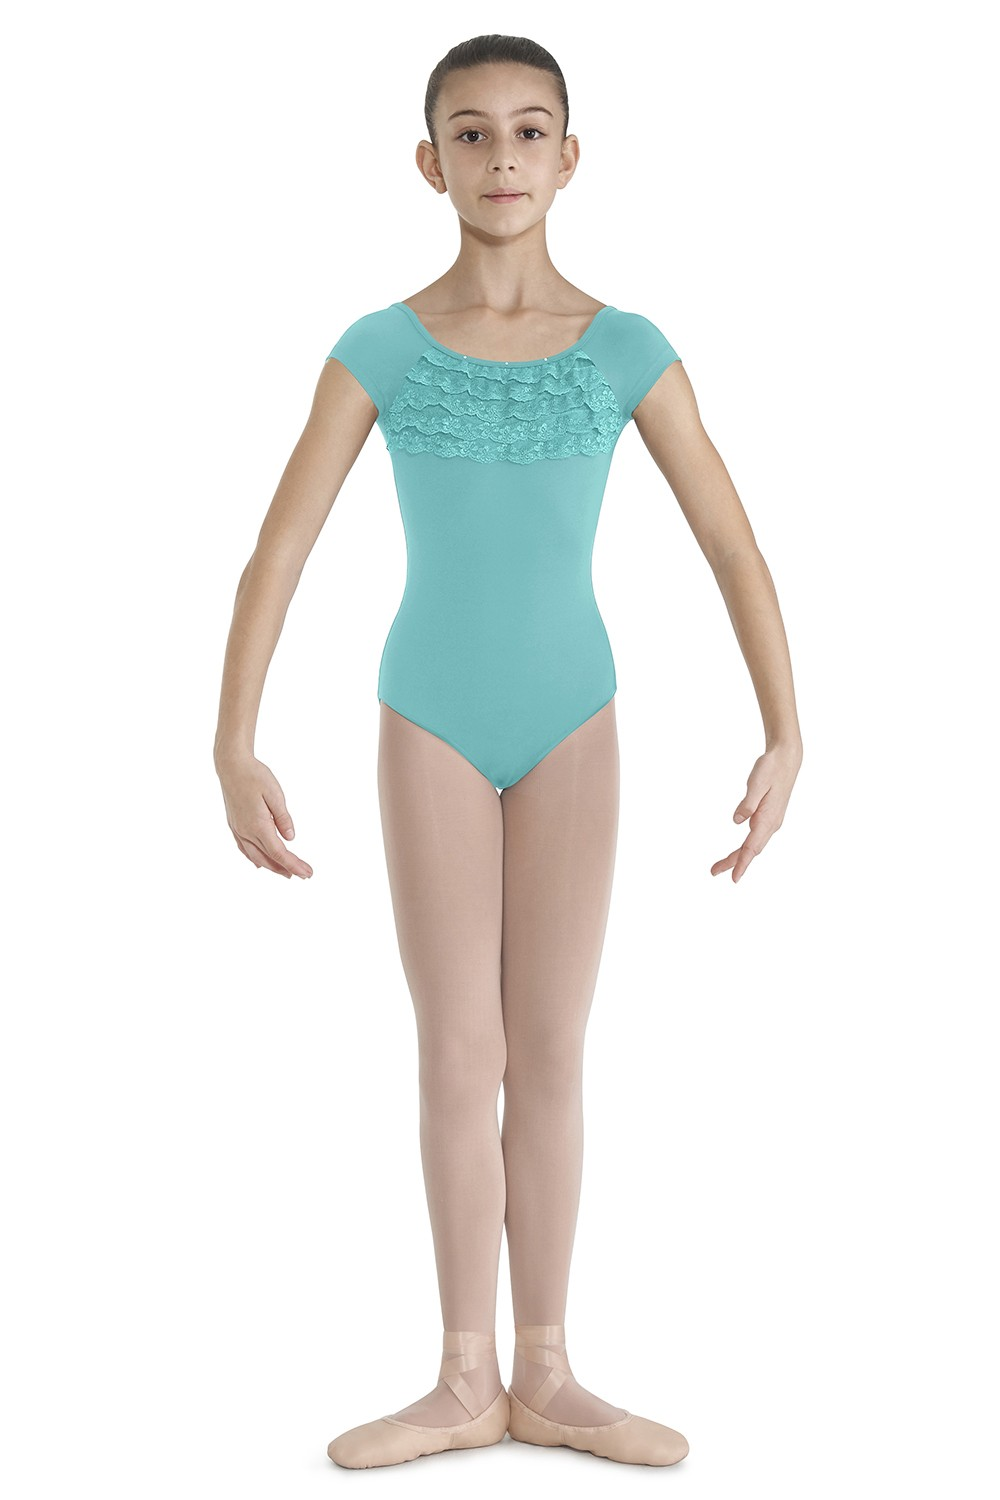 Diya Children's Dance Leotards